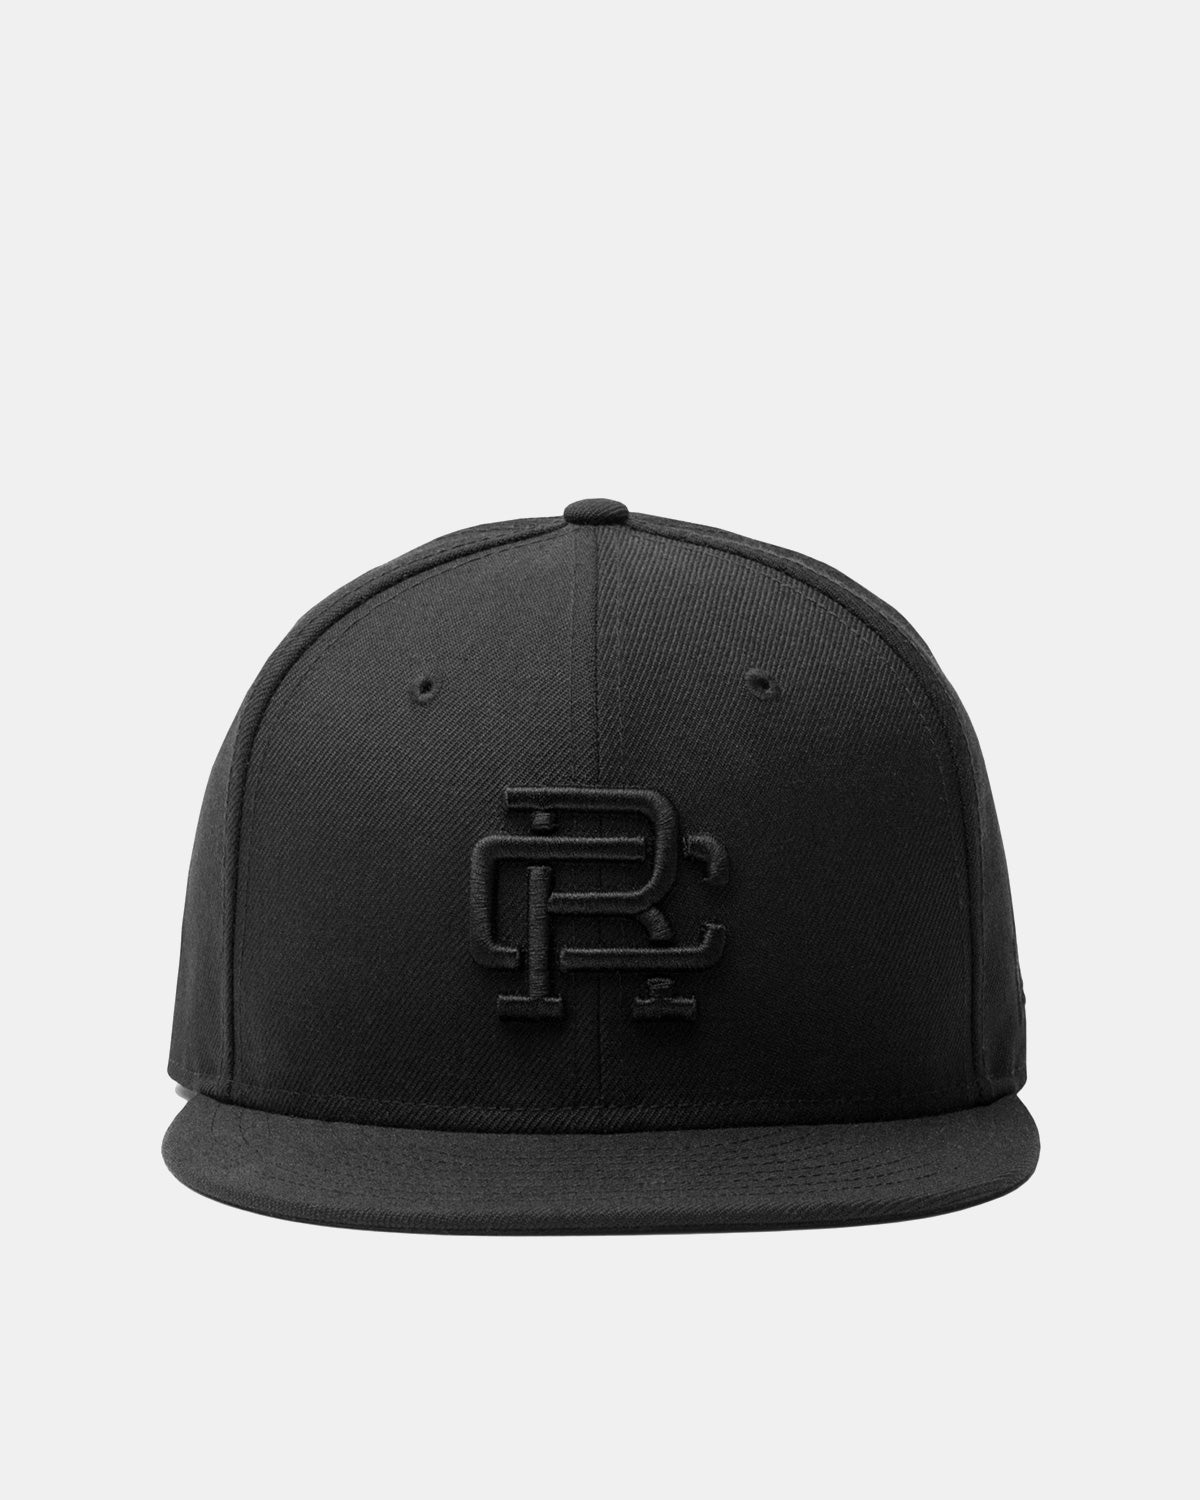 Reigning Champ - Reigning Champ x New Era Monogram Fitted Hat (Black | Virgin Wool)